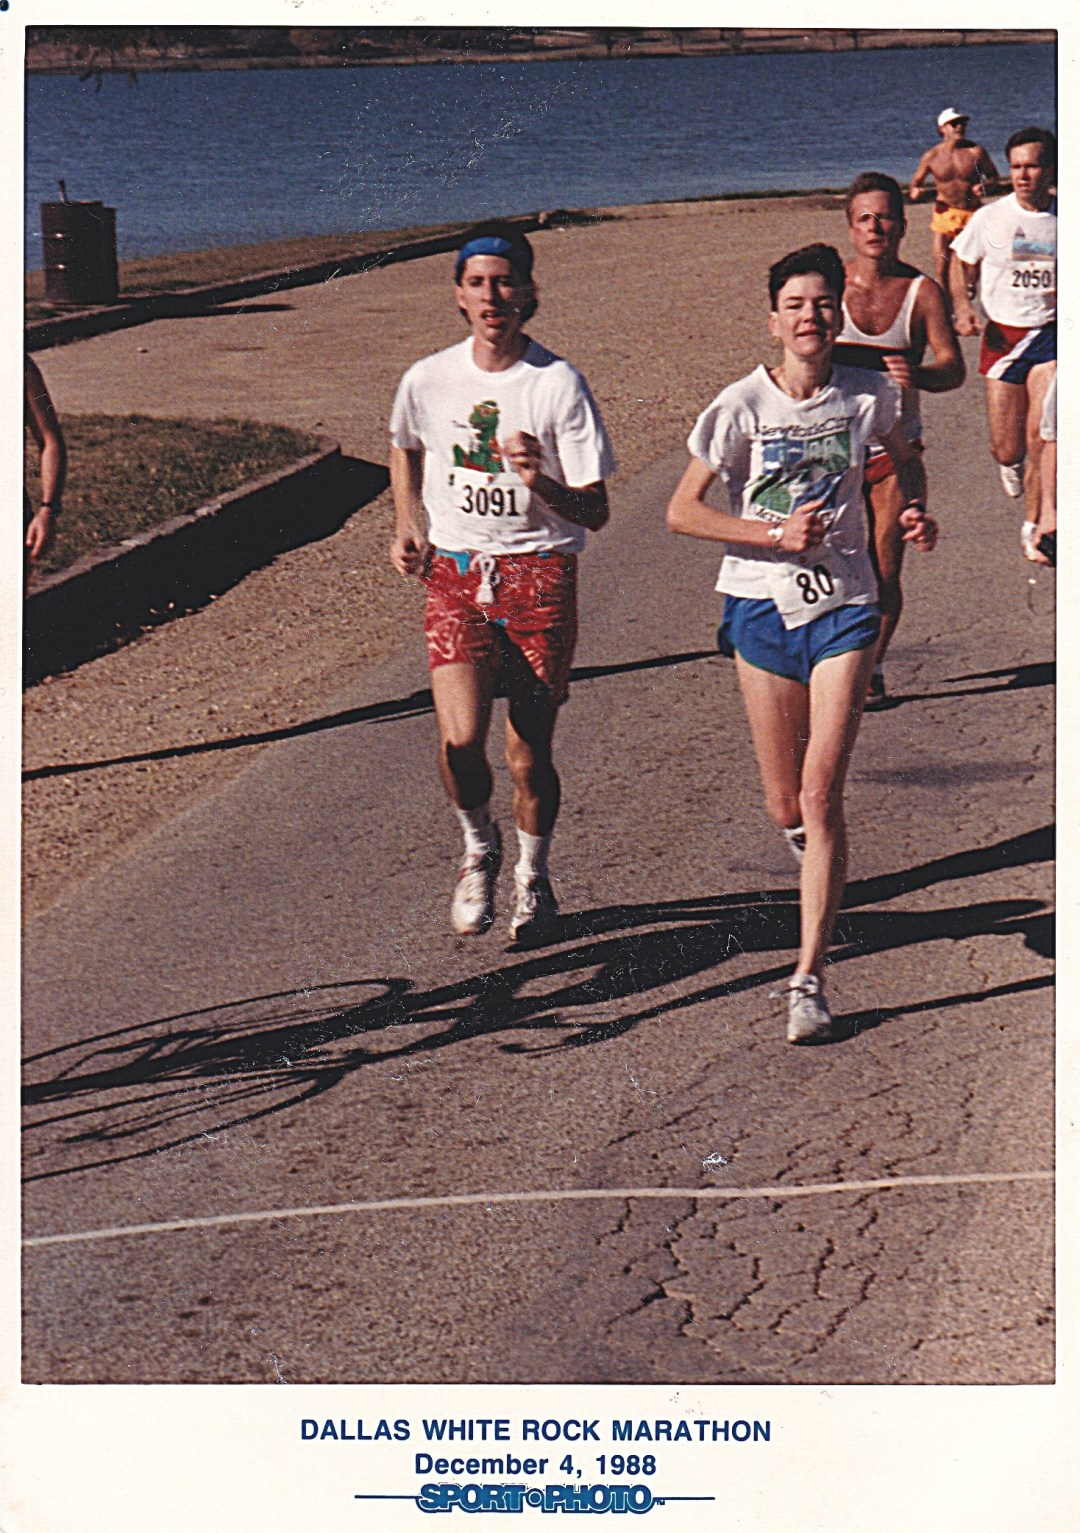 Running around White Rock Lake-Dallas Marathon Dec 4, 1988